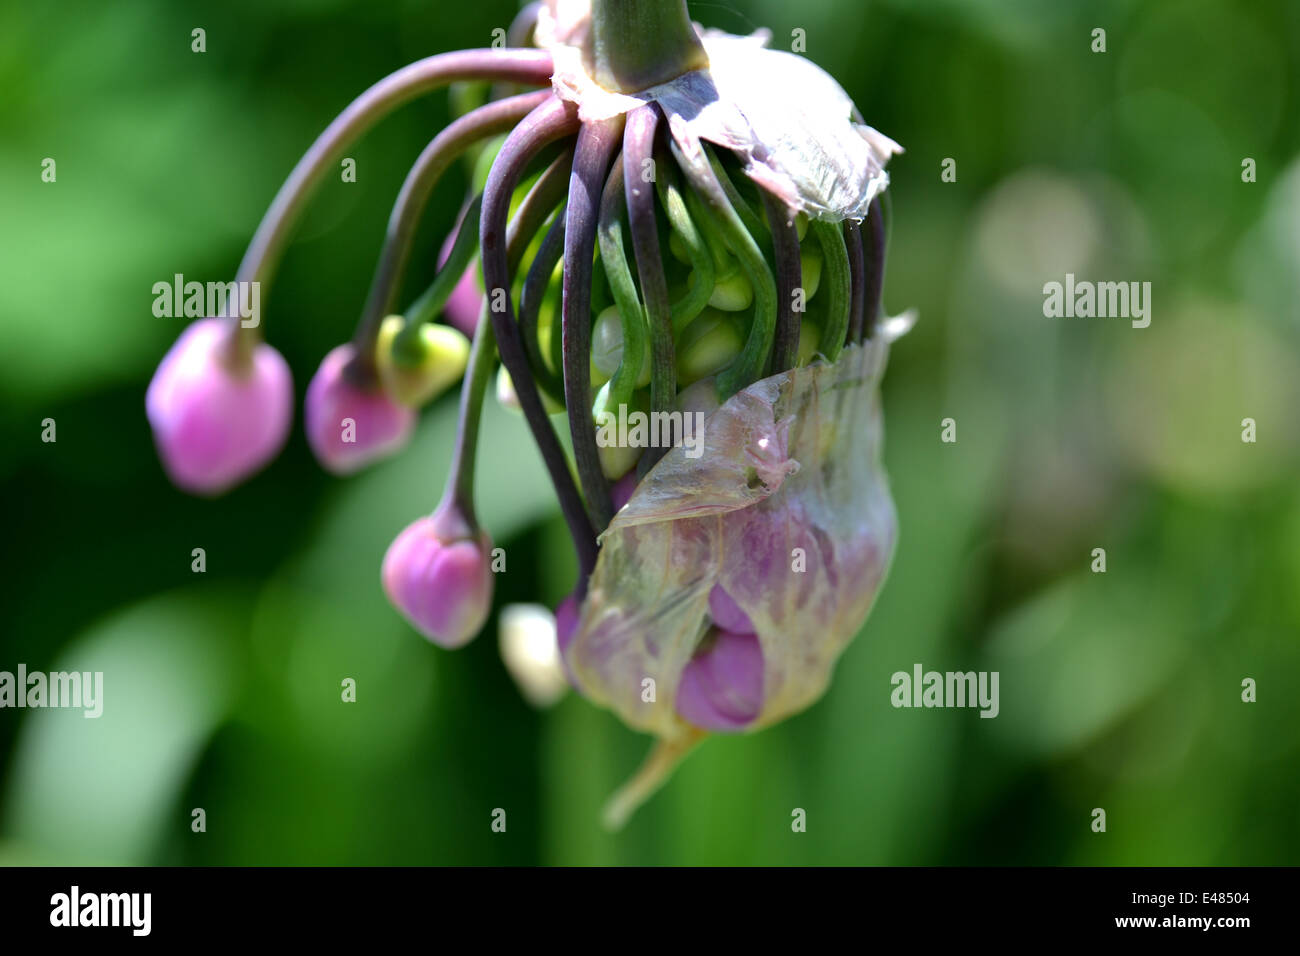 Allium cernuum flower (ornamental onion) breaking out of its sheath,(some still attached) early summer - Stock Image